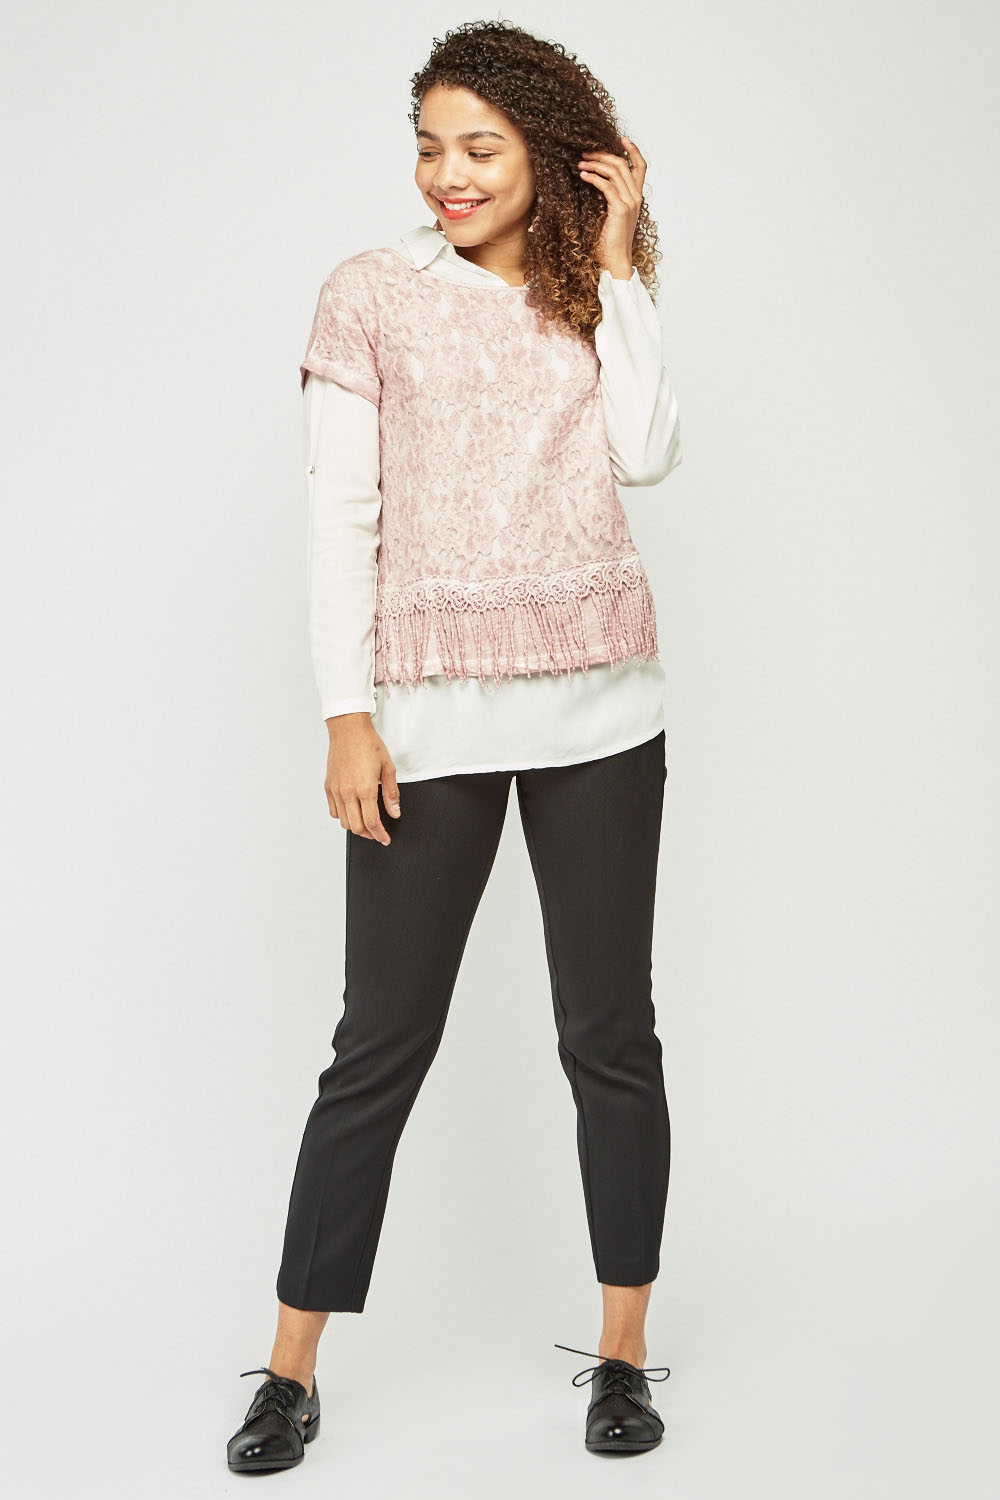 1297215187 Textured Lace Overlay Shirt - 3 Colours - Just £5